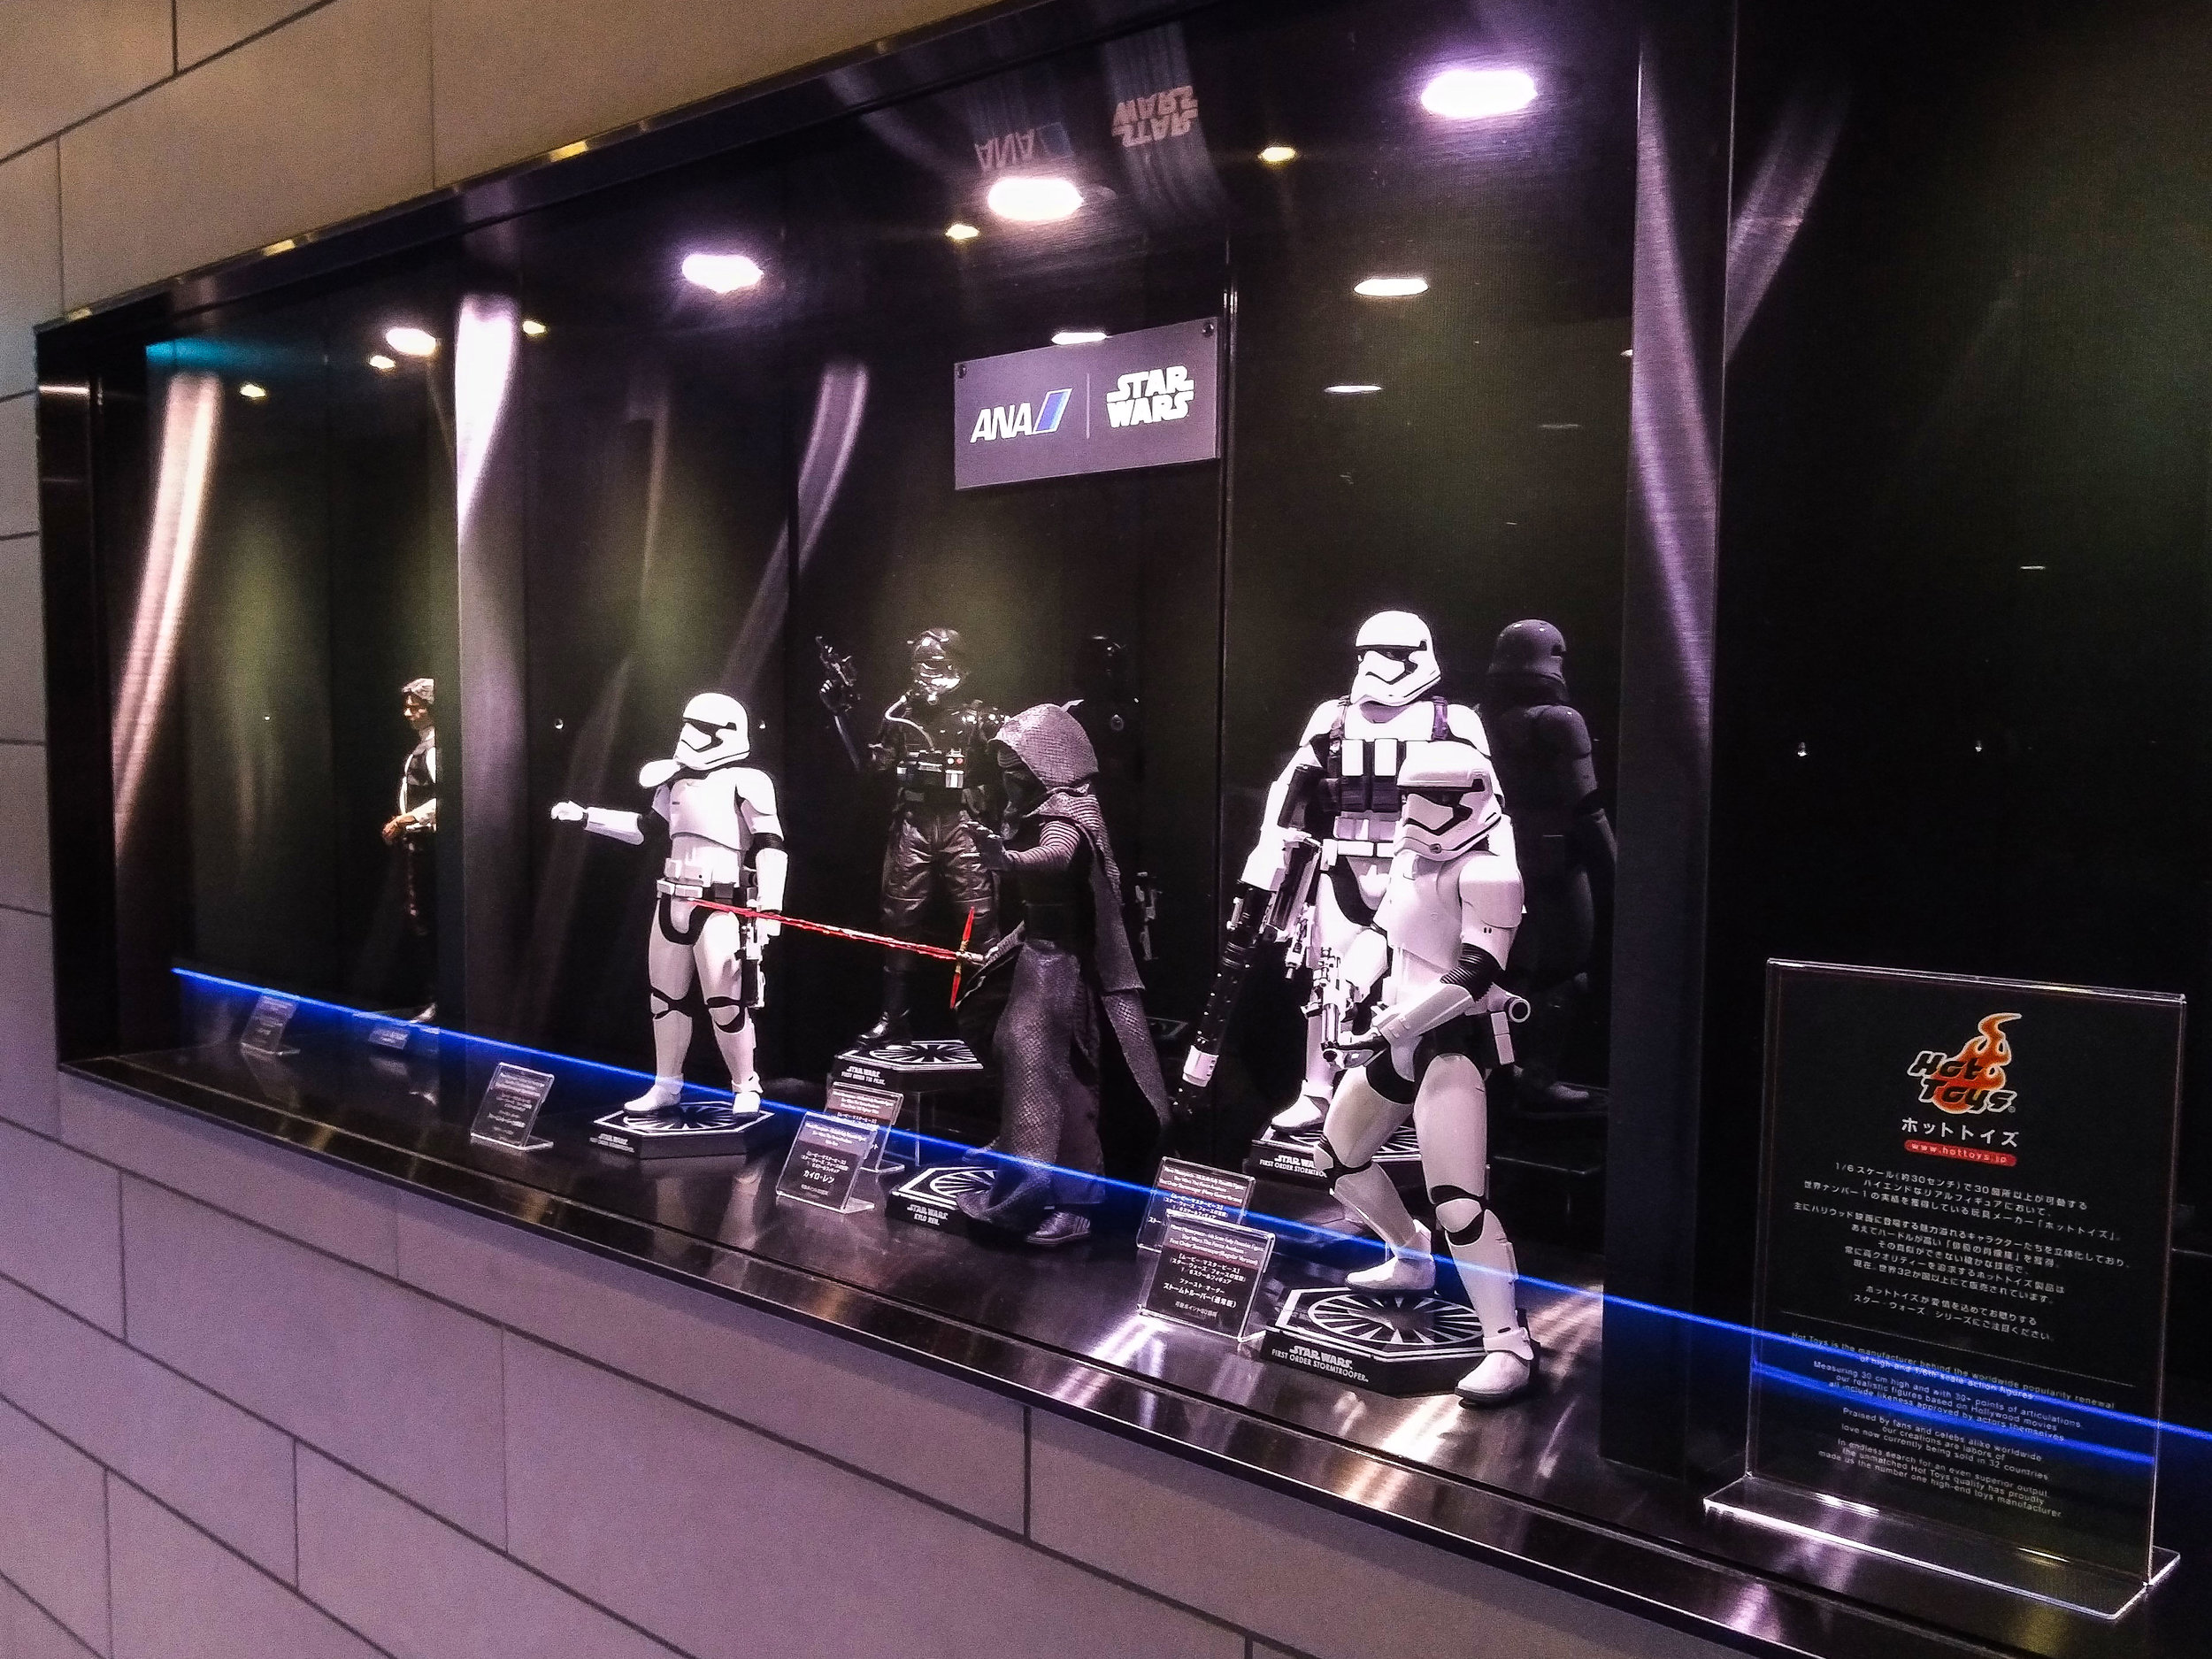 Star Wars figures could be found throughout the lounge!